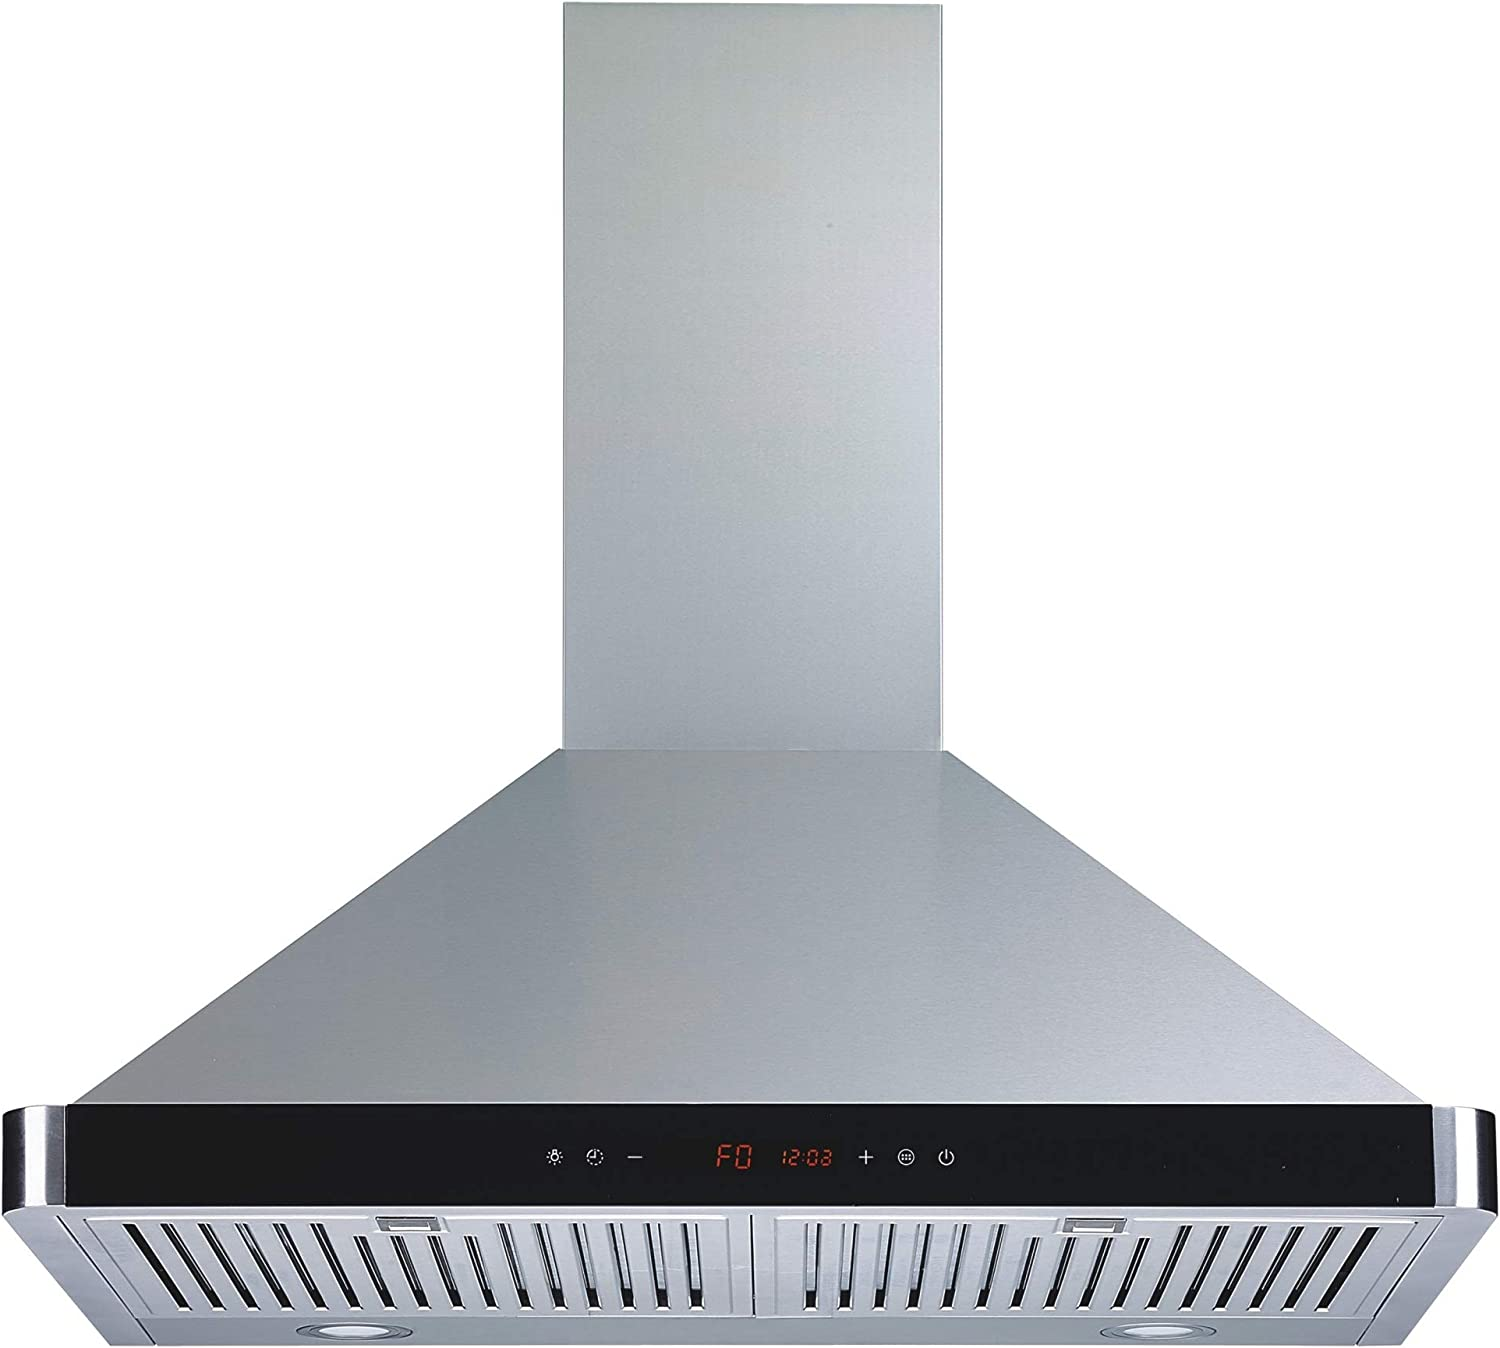 "Winflo 30"" Wall Mount Stainless Steel Convertible Kitchen Range Hood with 450 CFM Air Flow, Touch Control, Stainless Steel Baffle Filters and Ultra Bright LED Lights"